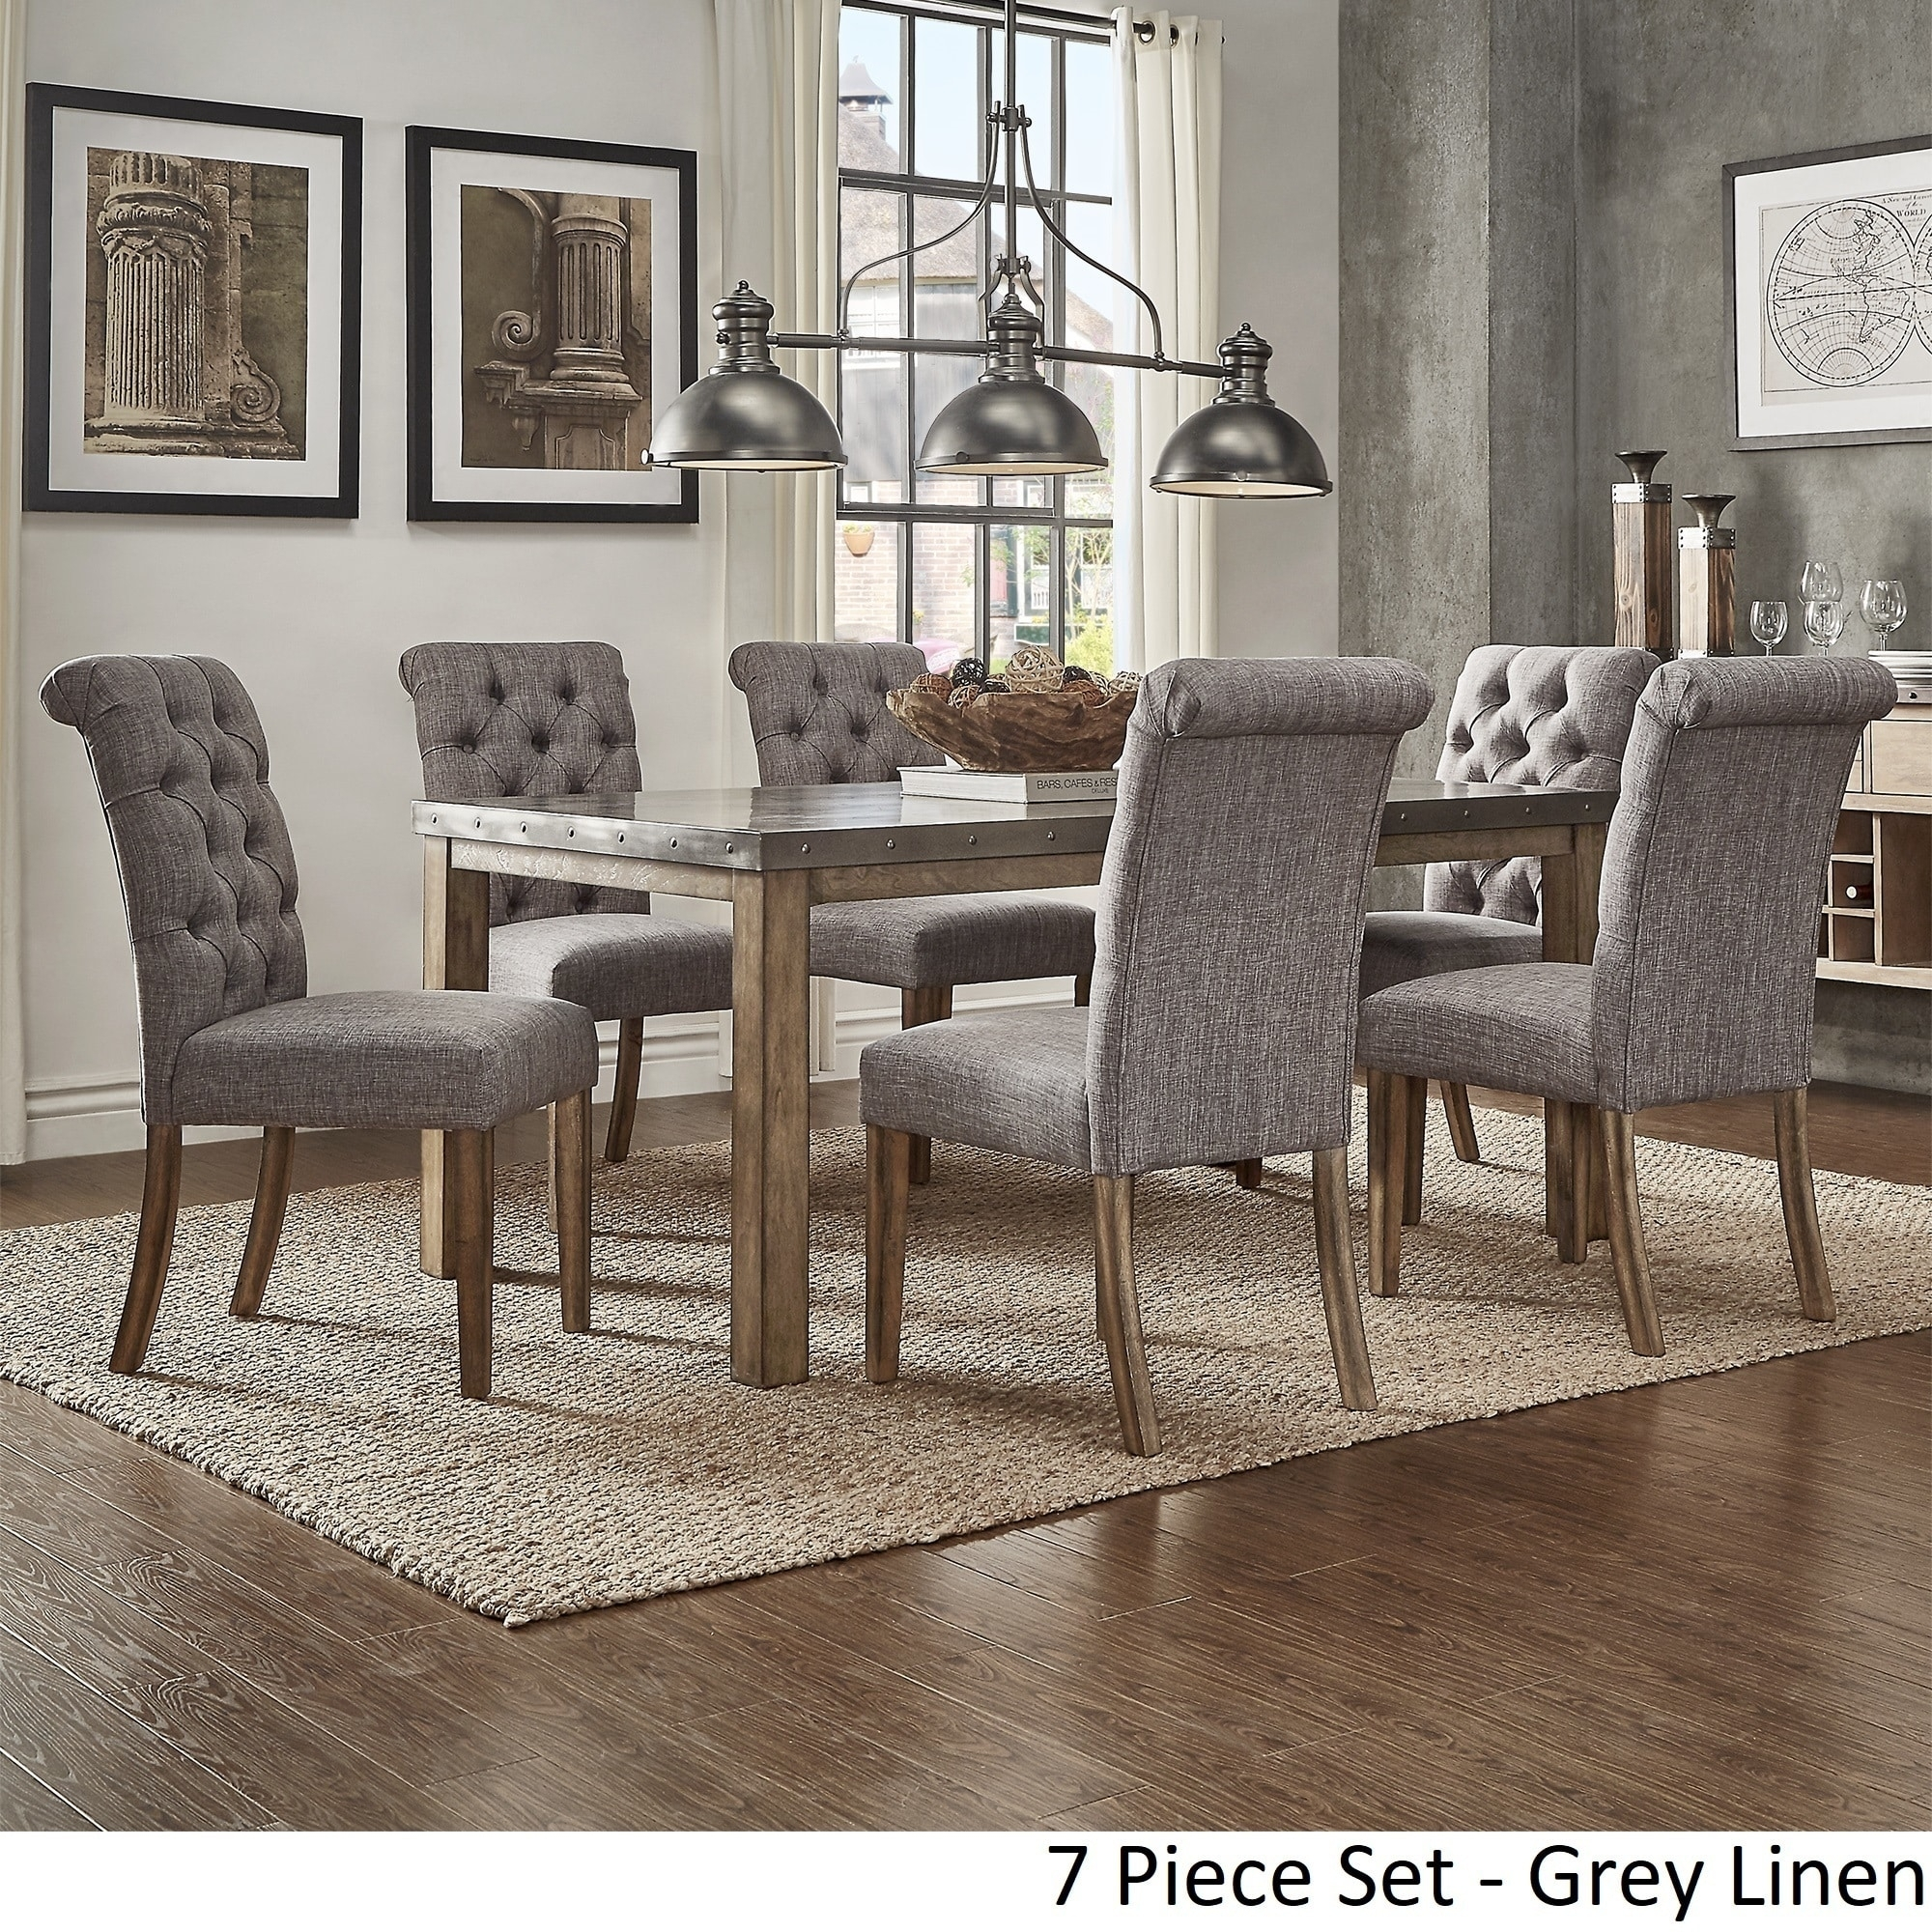 Cassidy Stainless Steel Top Rectangle Dining Table Setinspire Q Within Most Current Candice Ii 7 Piece Extension Rectangular Dining Sets With Slat Back Side Chairs (View 11 of 20)